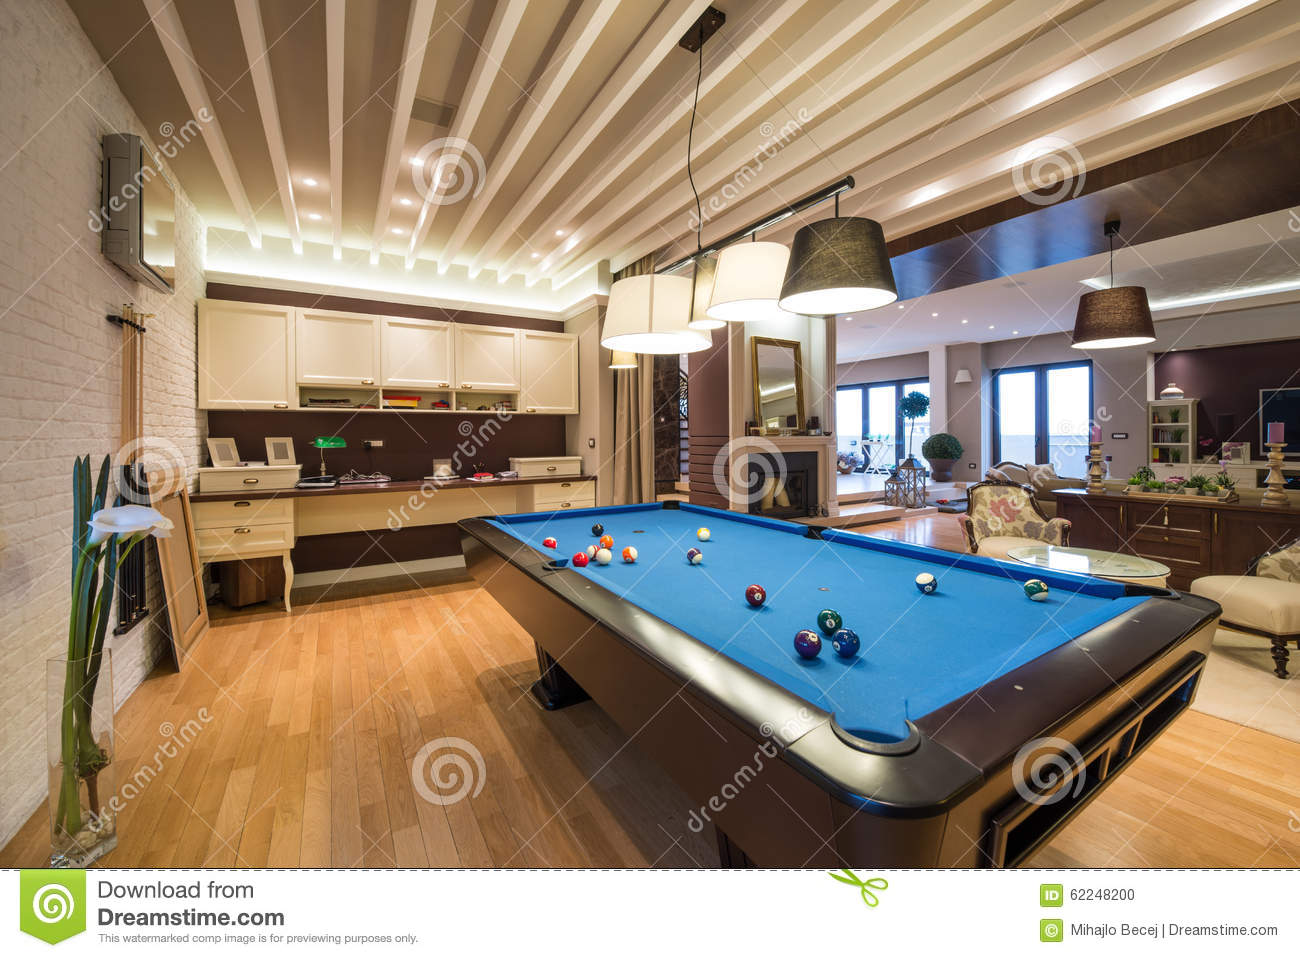 Interior Of A Luxury Living Room With Pool Table. Lights, Furniture.